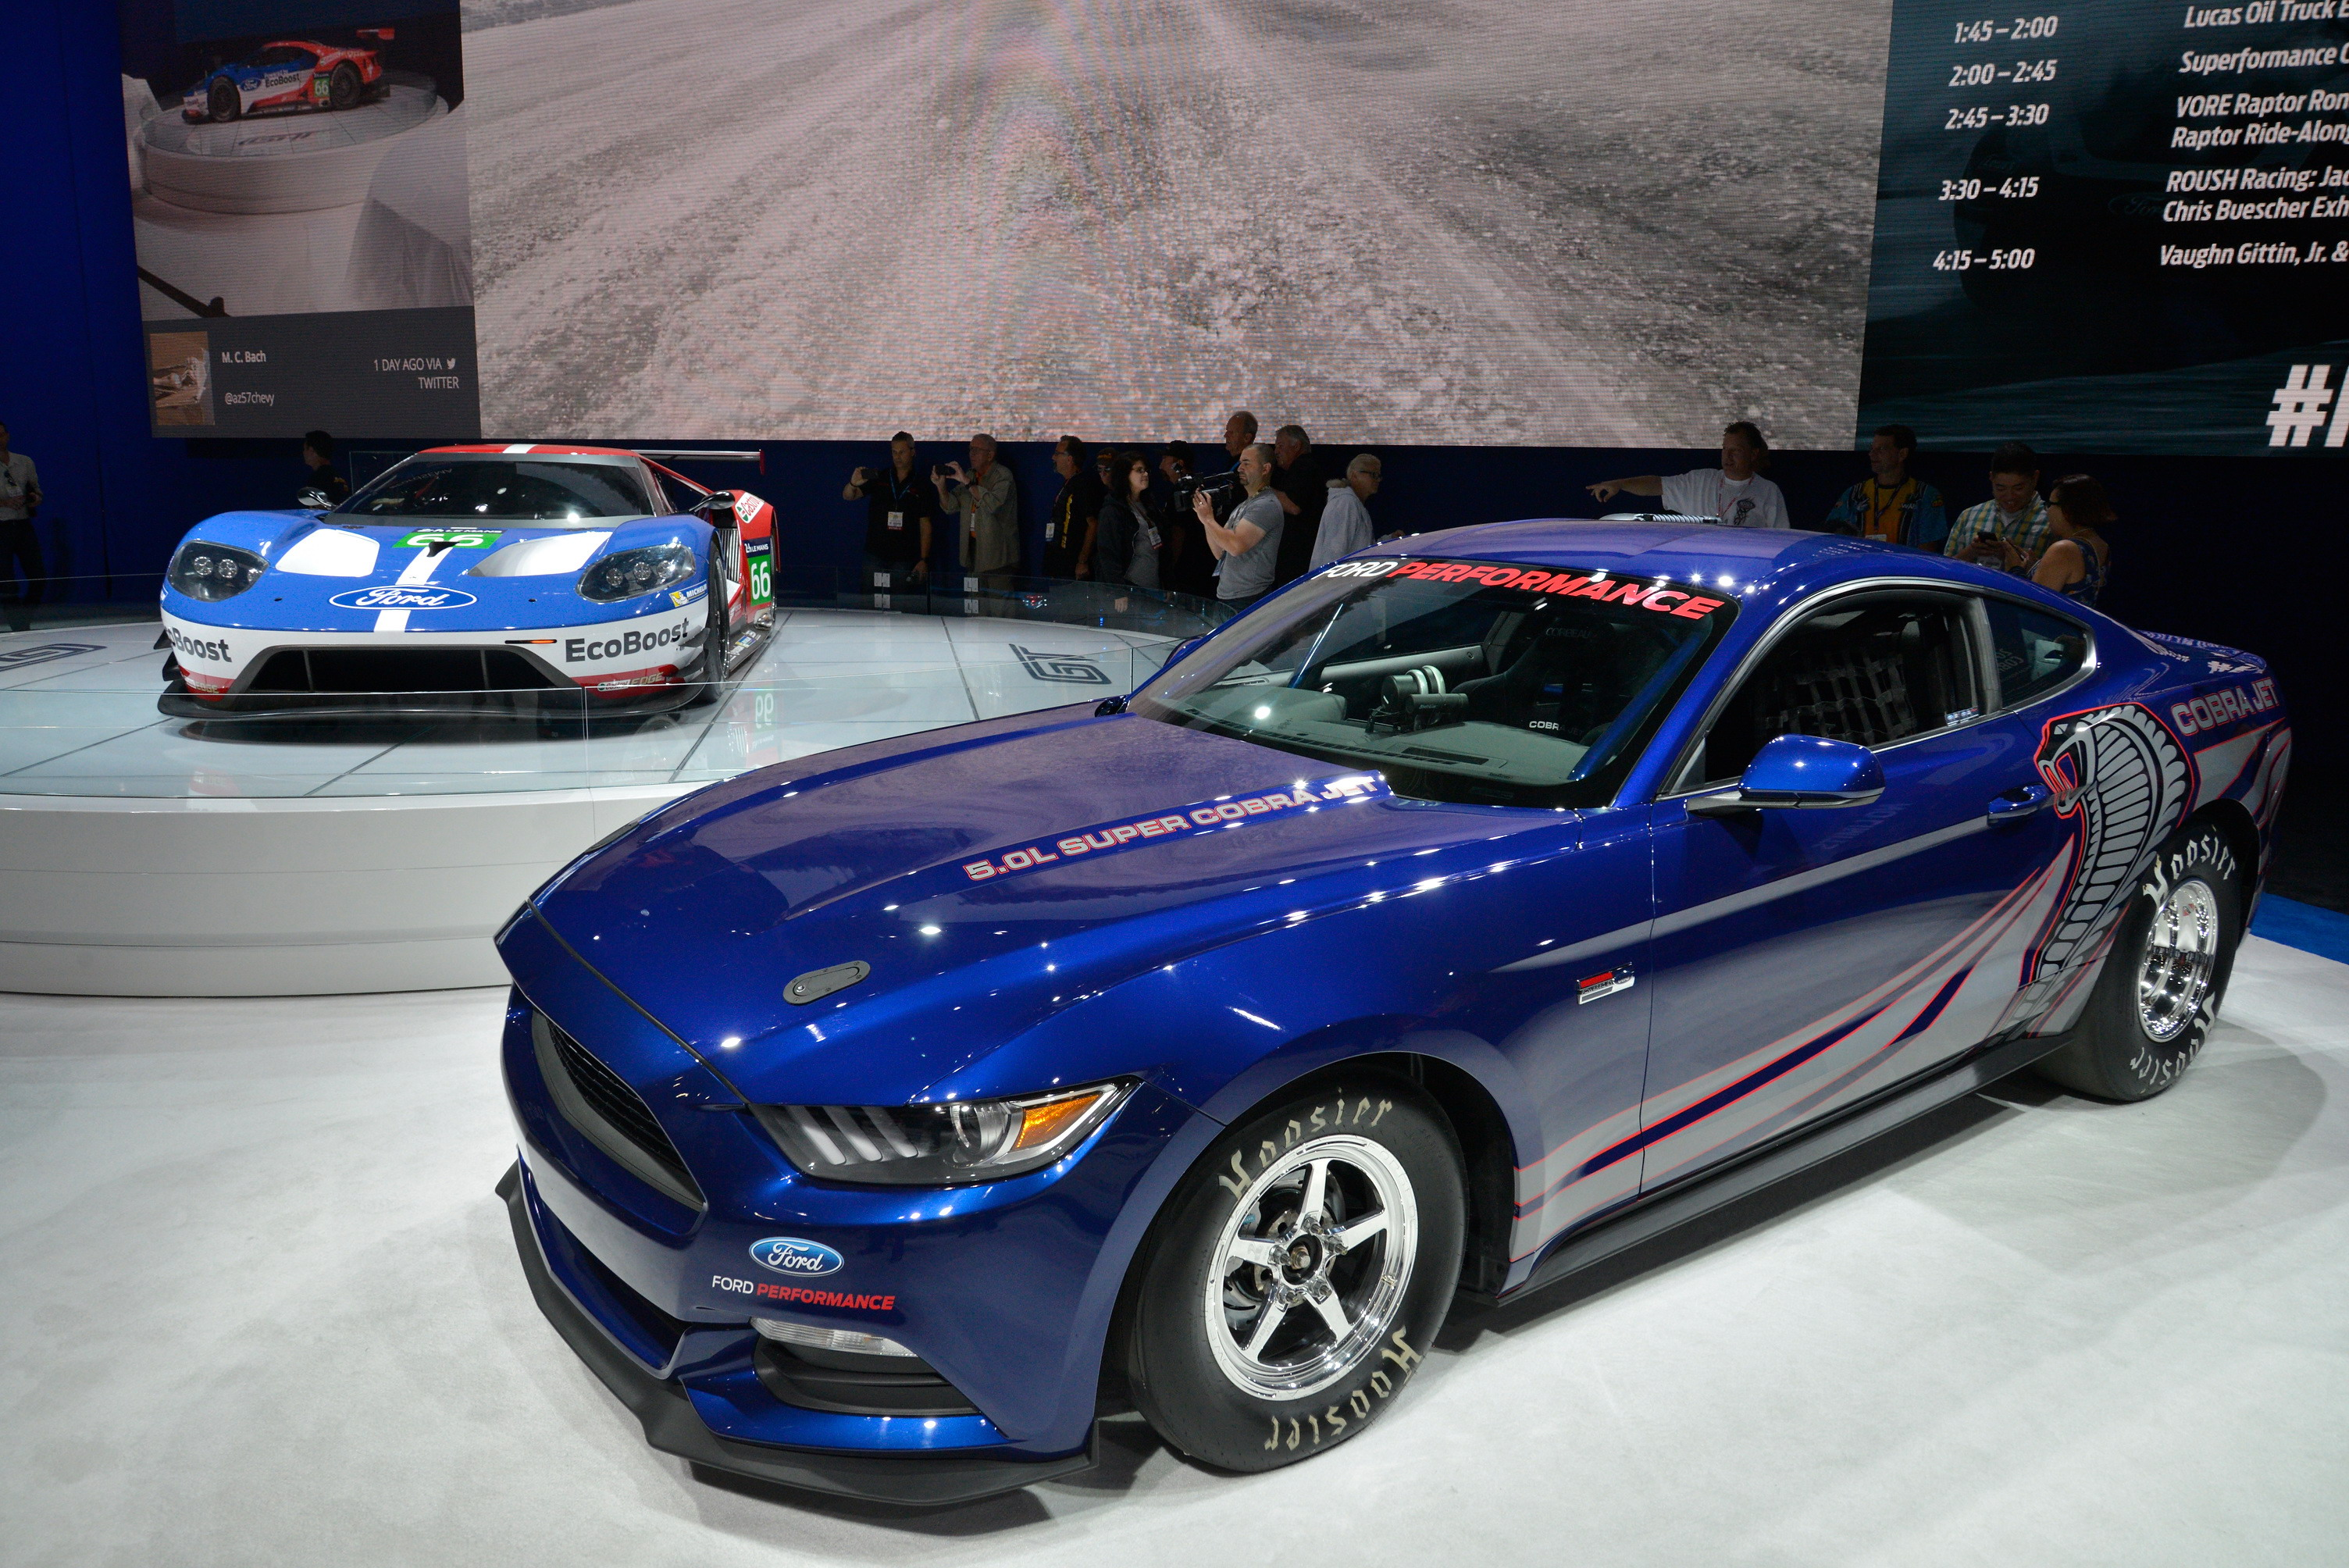 2016 Ford Mustang Cobra Jet | Top Speed